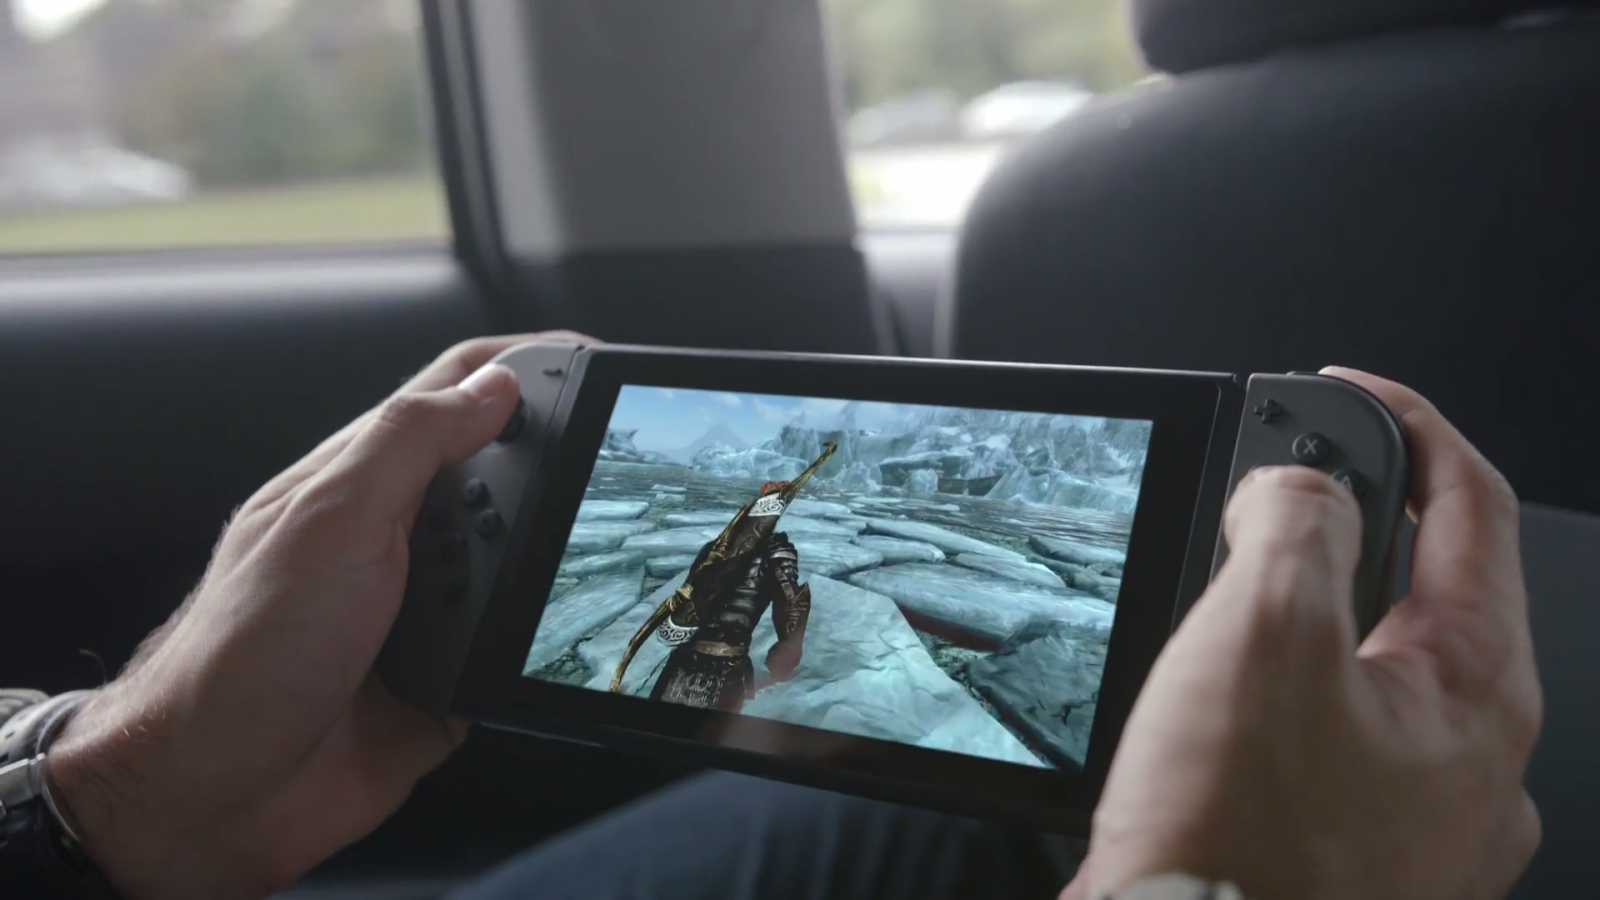 Skyrim being played on a Nintendo Switch